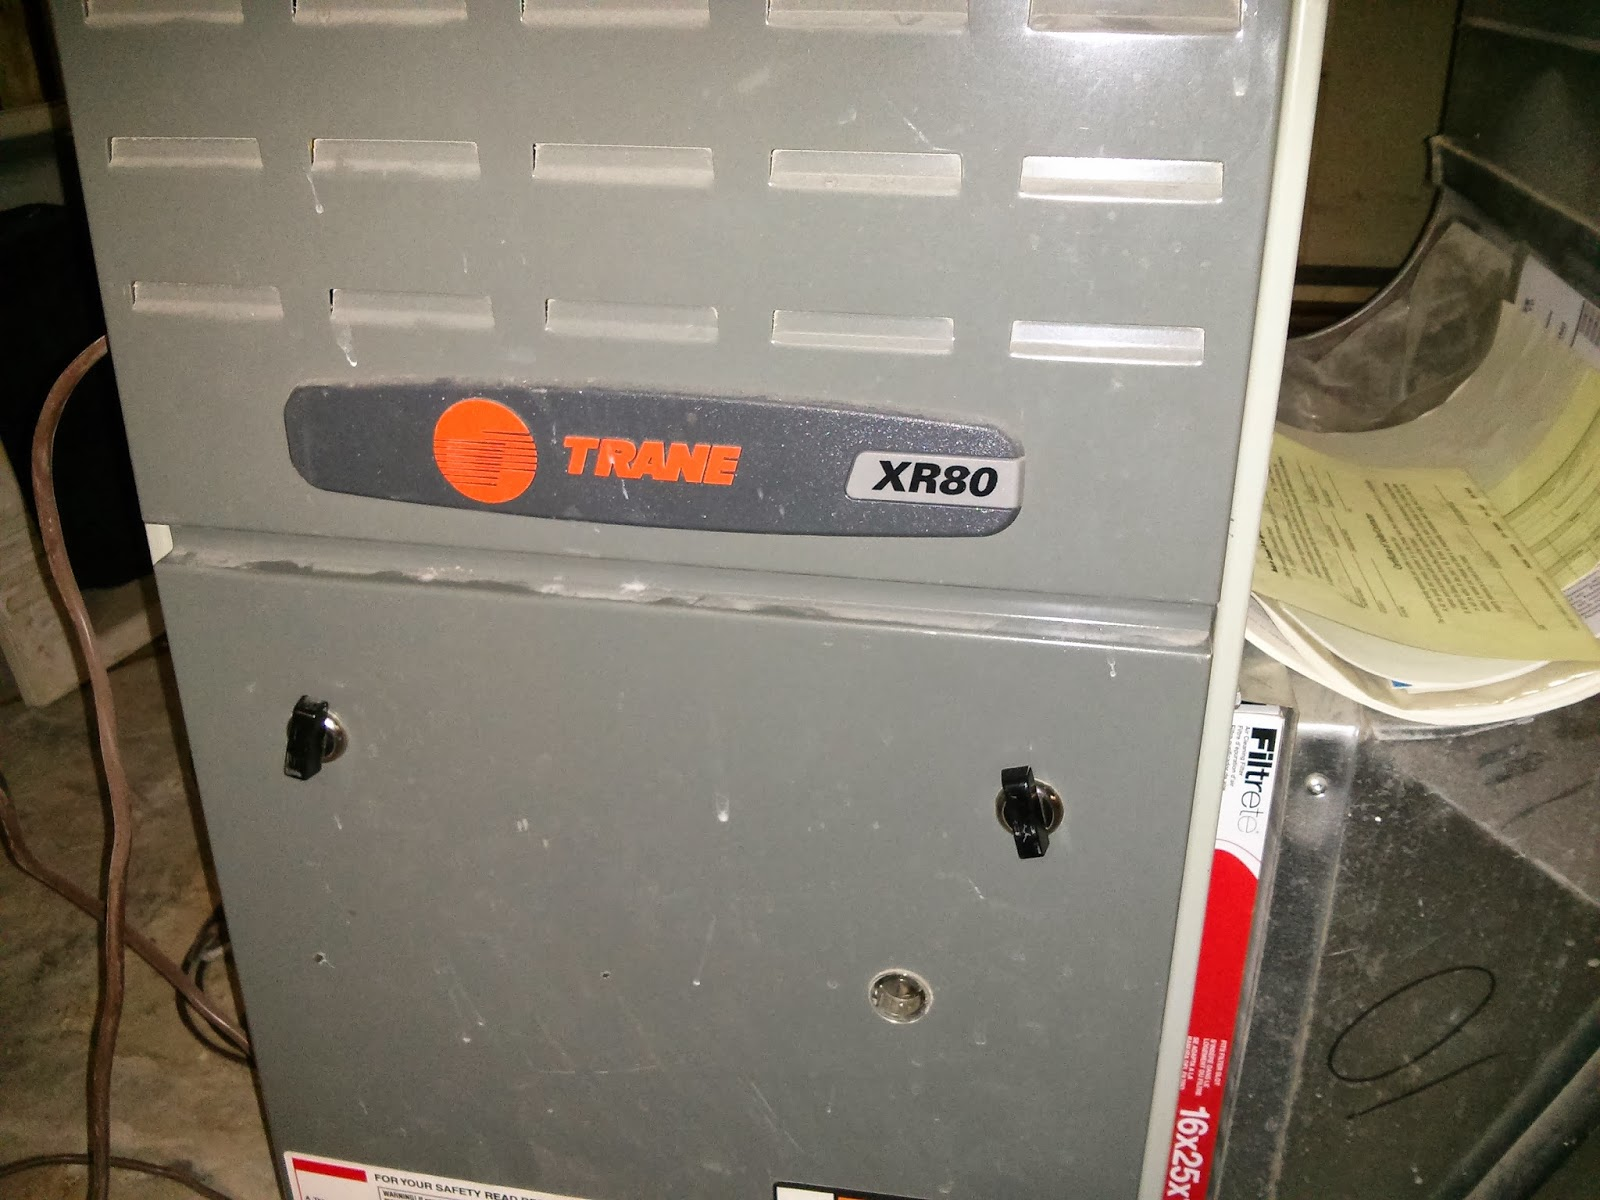 Trane Xr80 Diagram, Trane, Free Engine Image For User ...